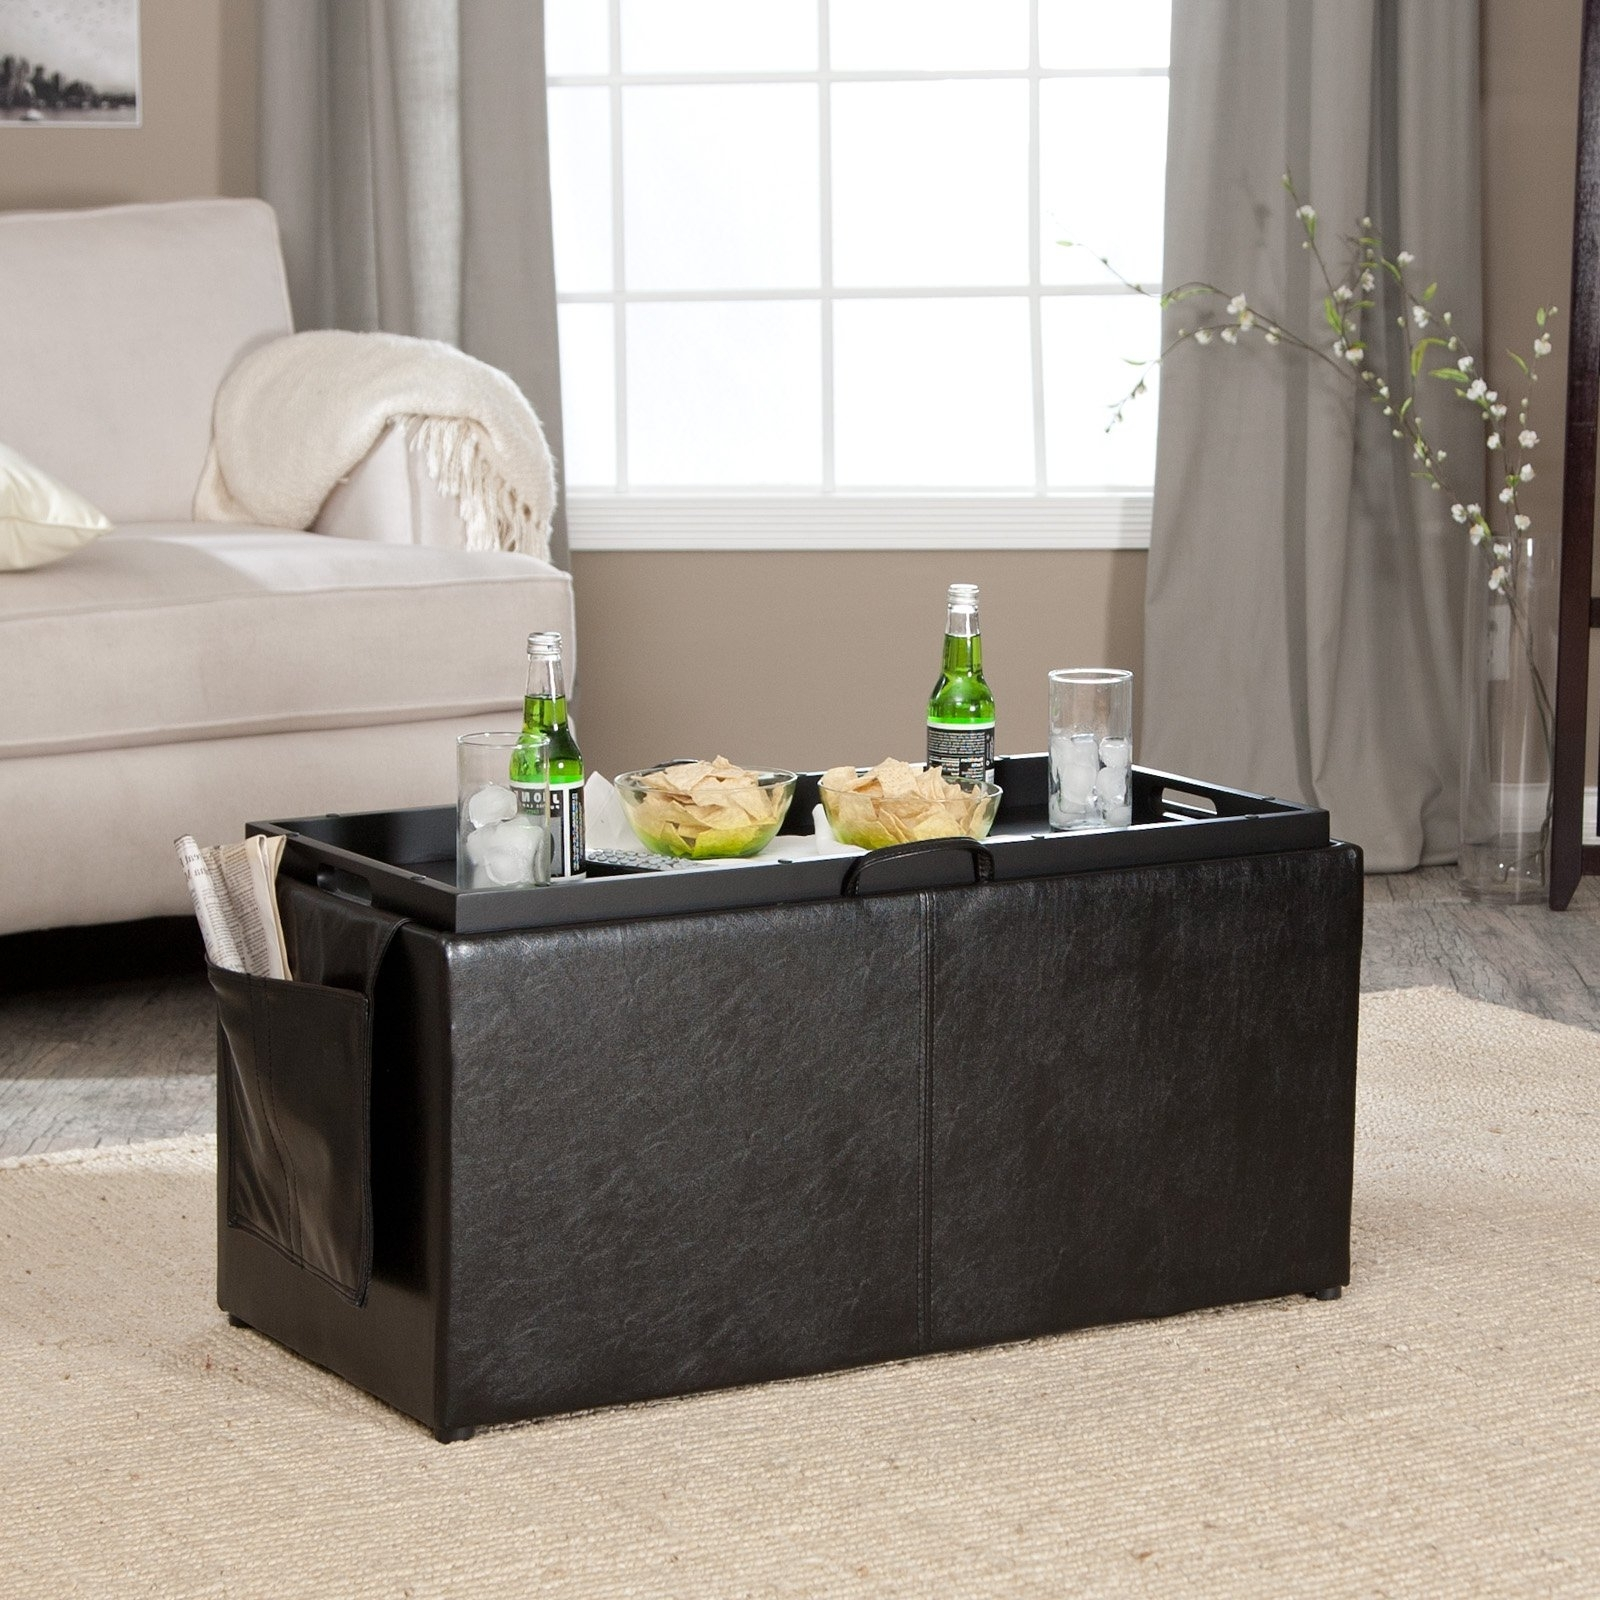 Ottomans With Tray Intended For Preferred Hartley Coffee Table Storage Ottoman With Tray – Side Ottomans (View 11 of 15)